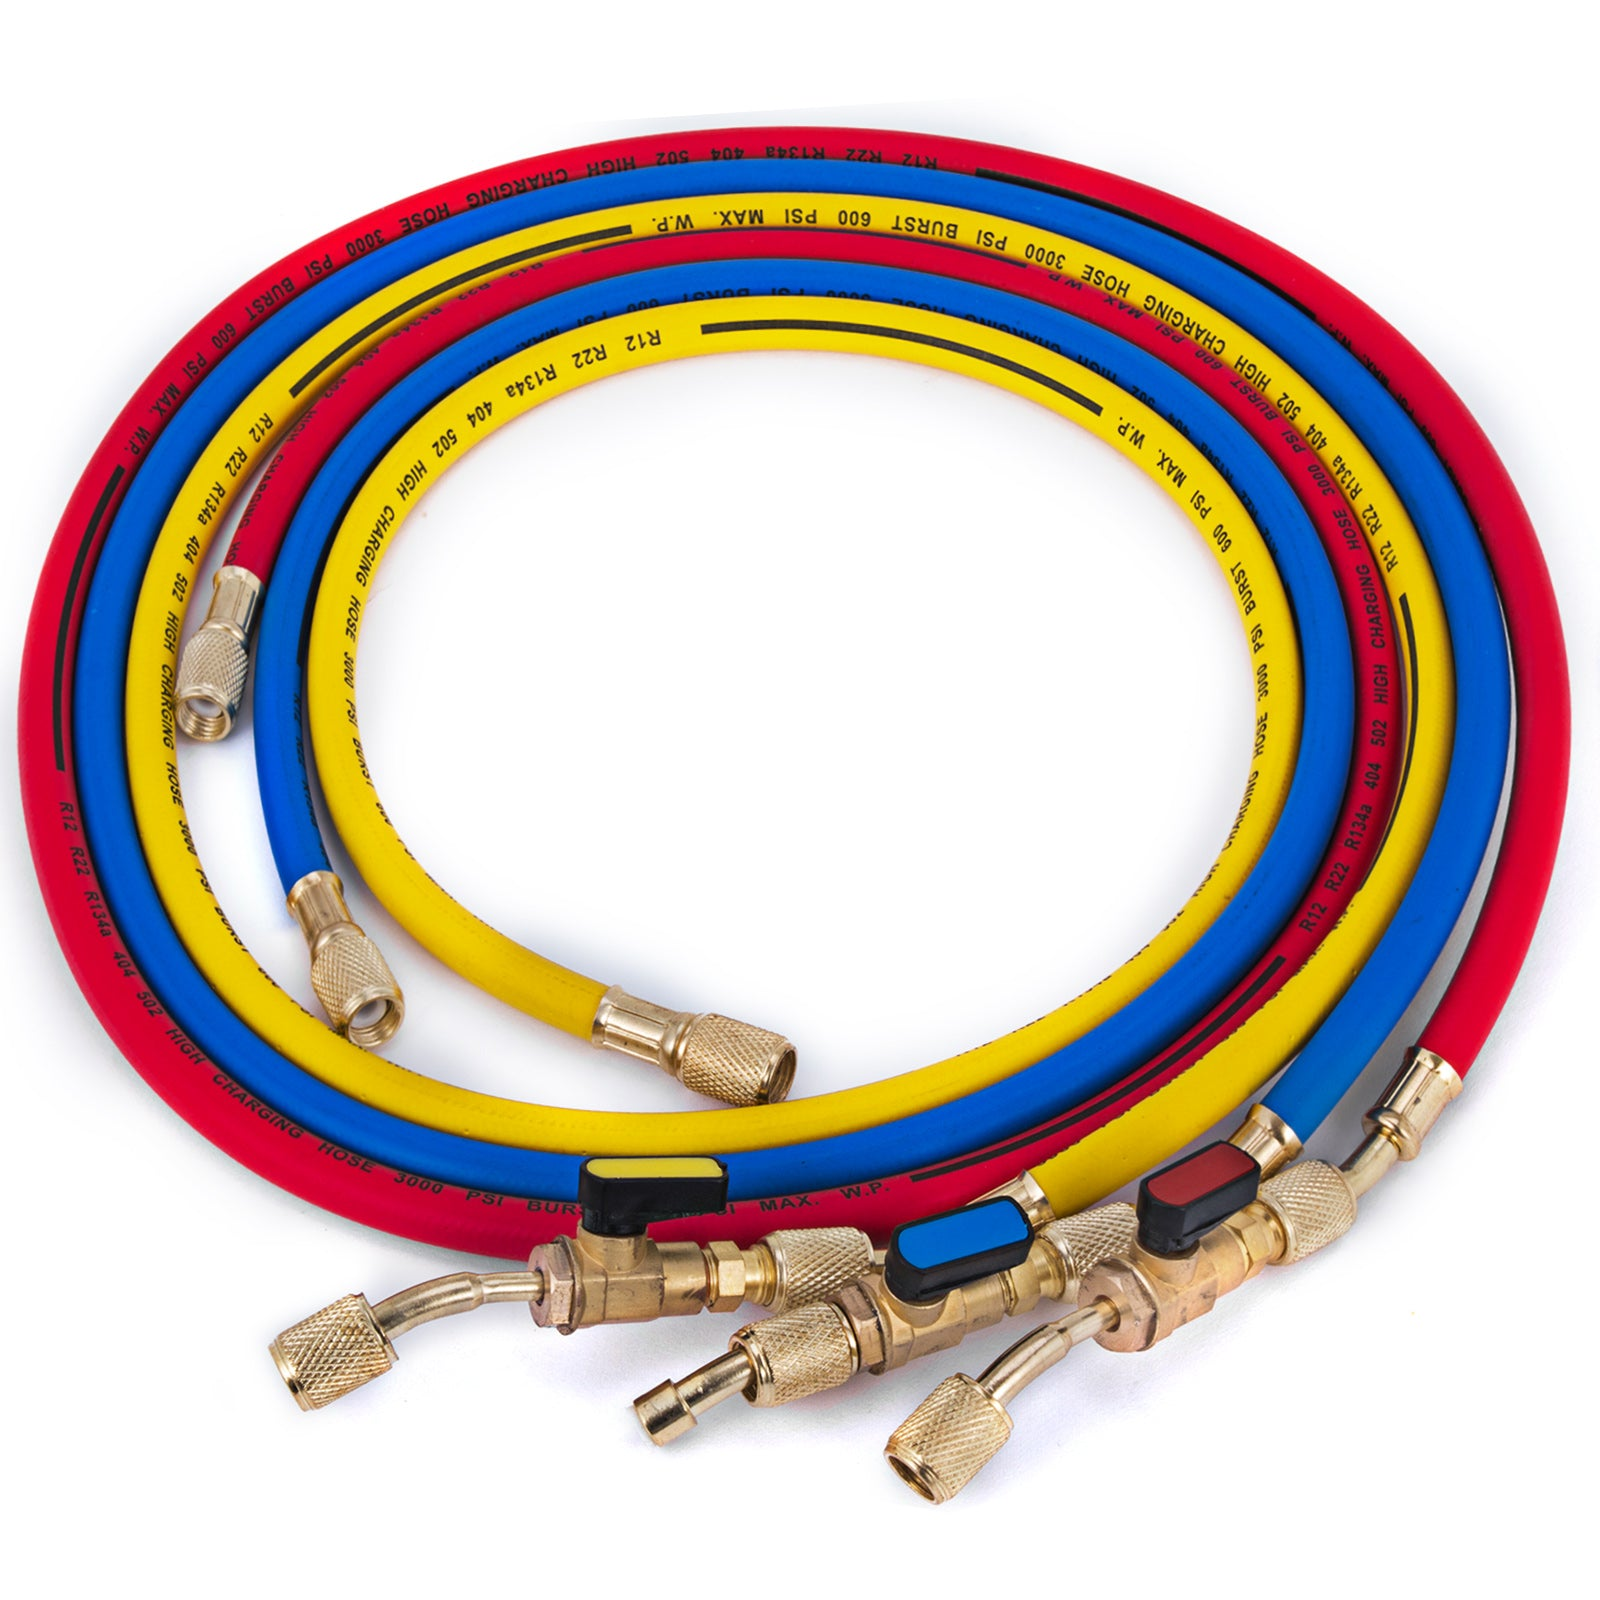 Manifold Hose Set 36in Red Yellow Blue 29983 Compact Ball Valve